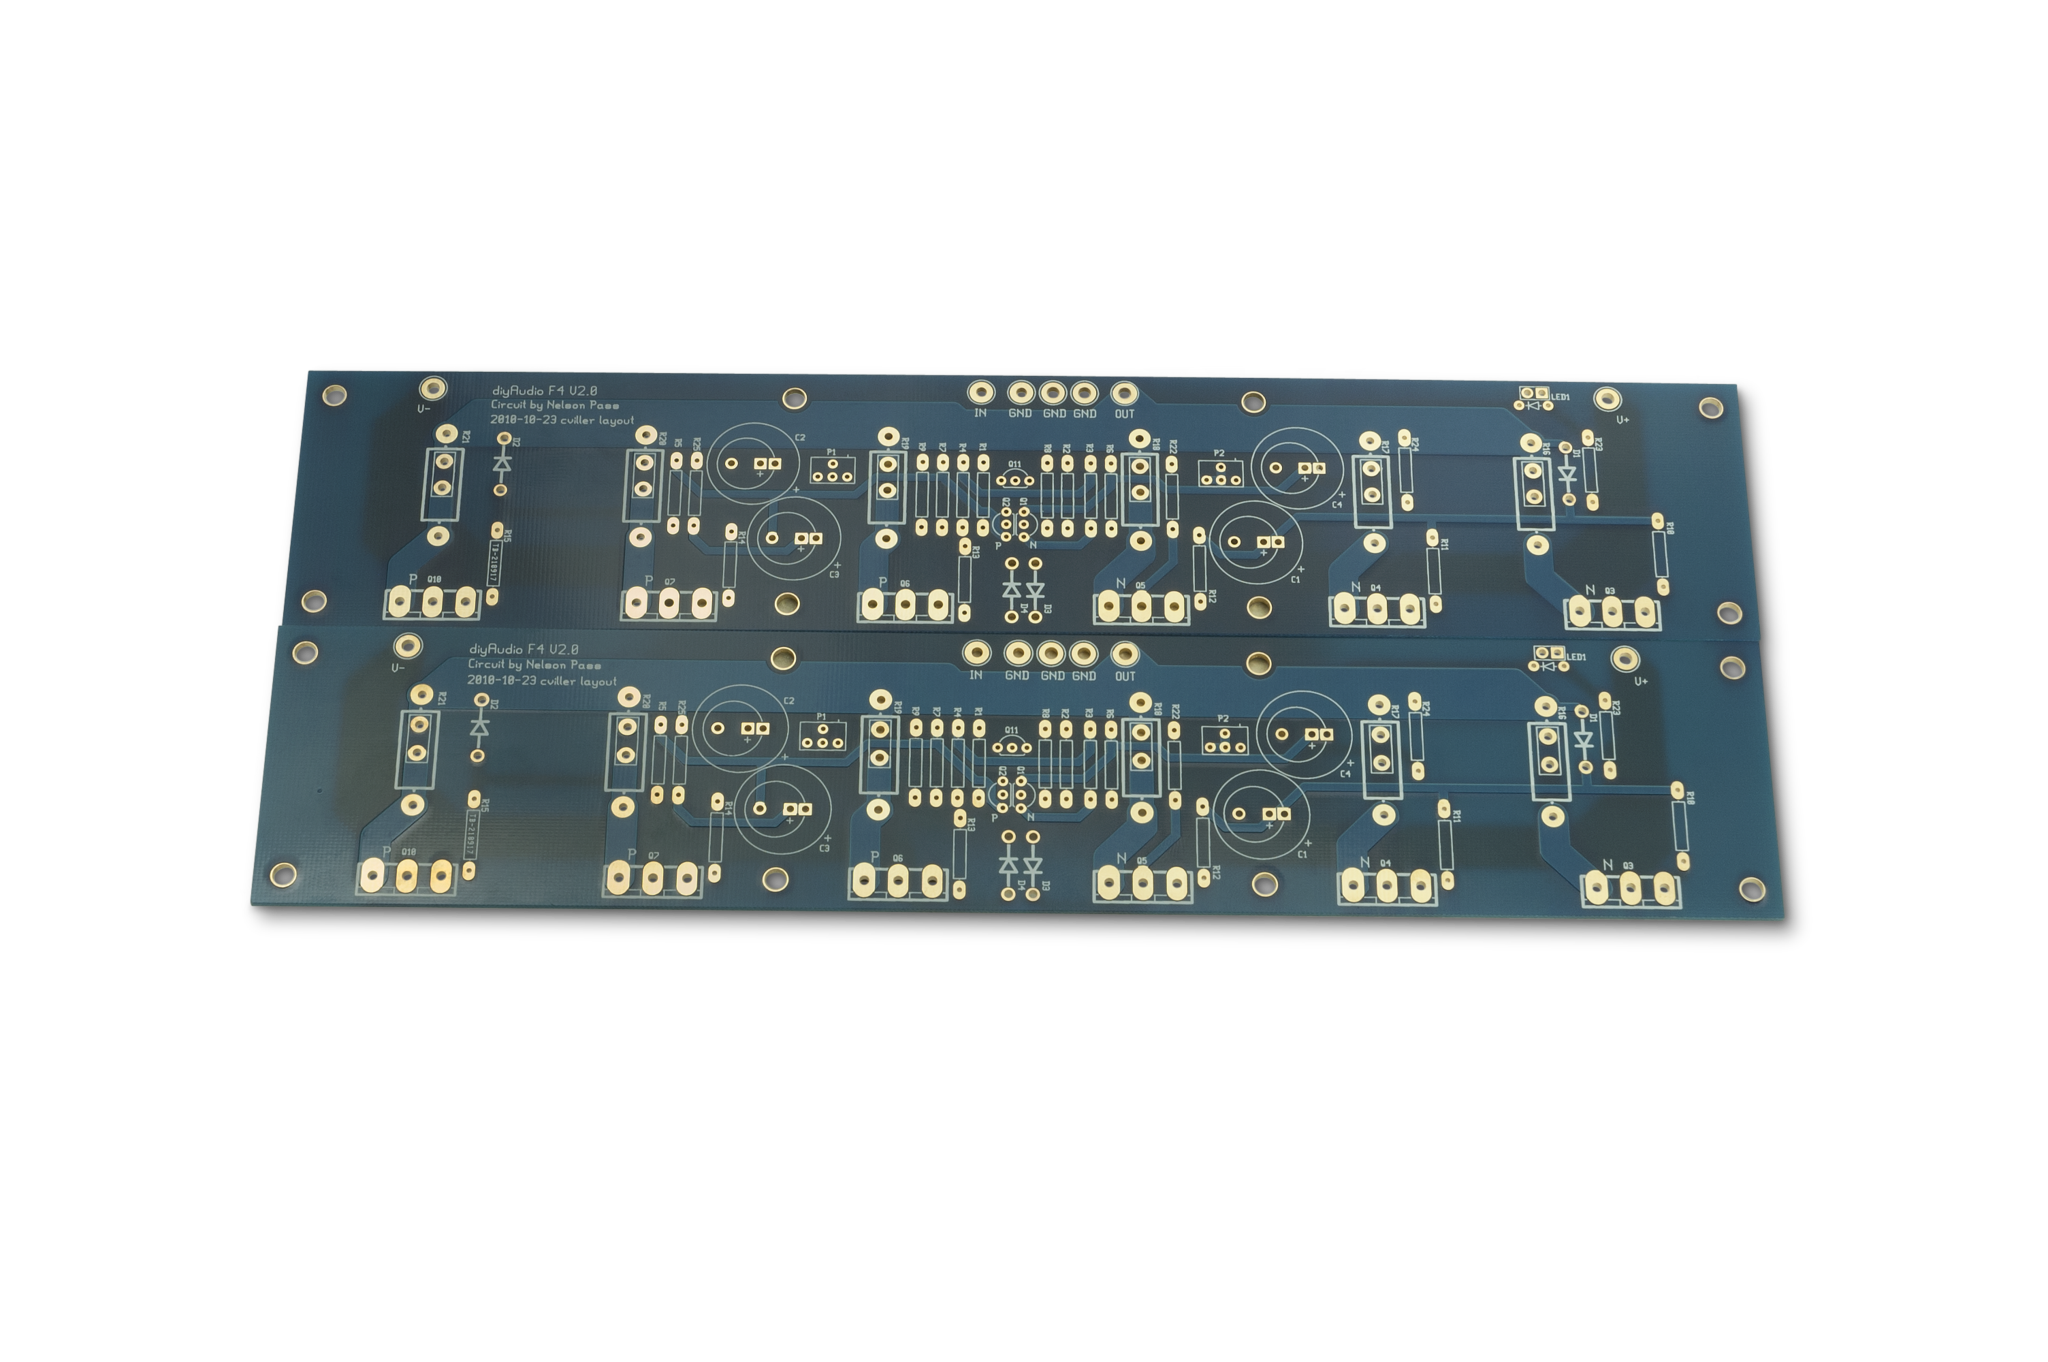 Https Daily Products 1u Aleph J Circuit Diagram Dsc 0481 7467b90f 0836 485b A528 B3a19c16dc87v1449804754